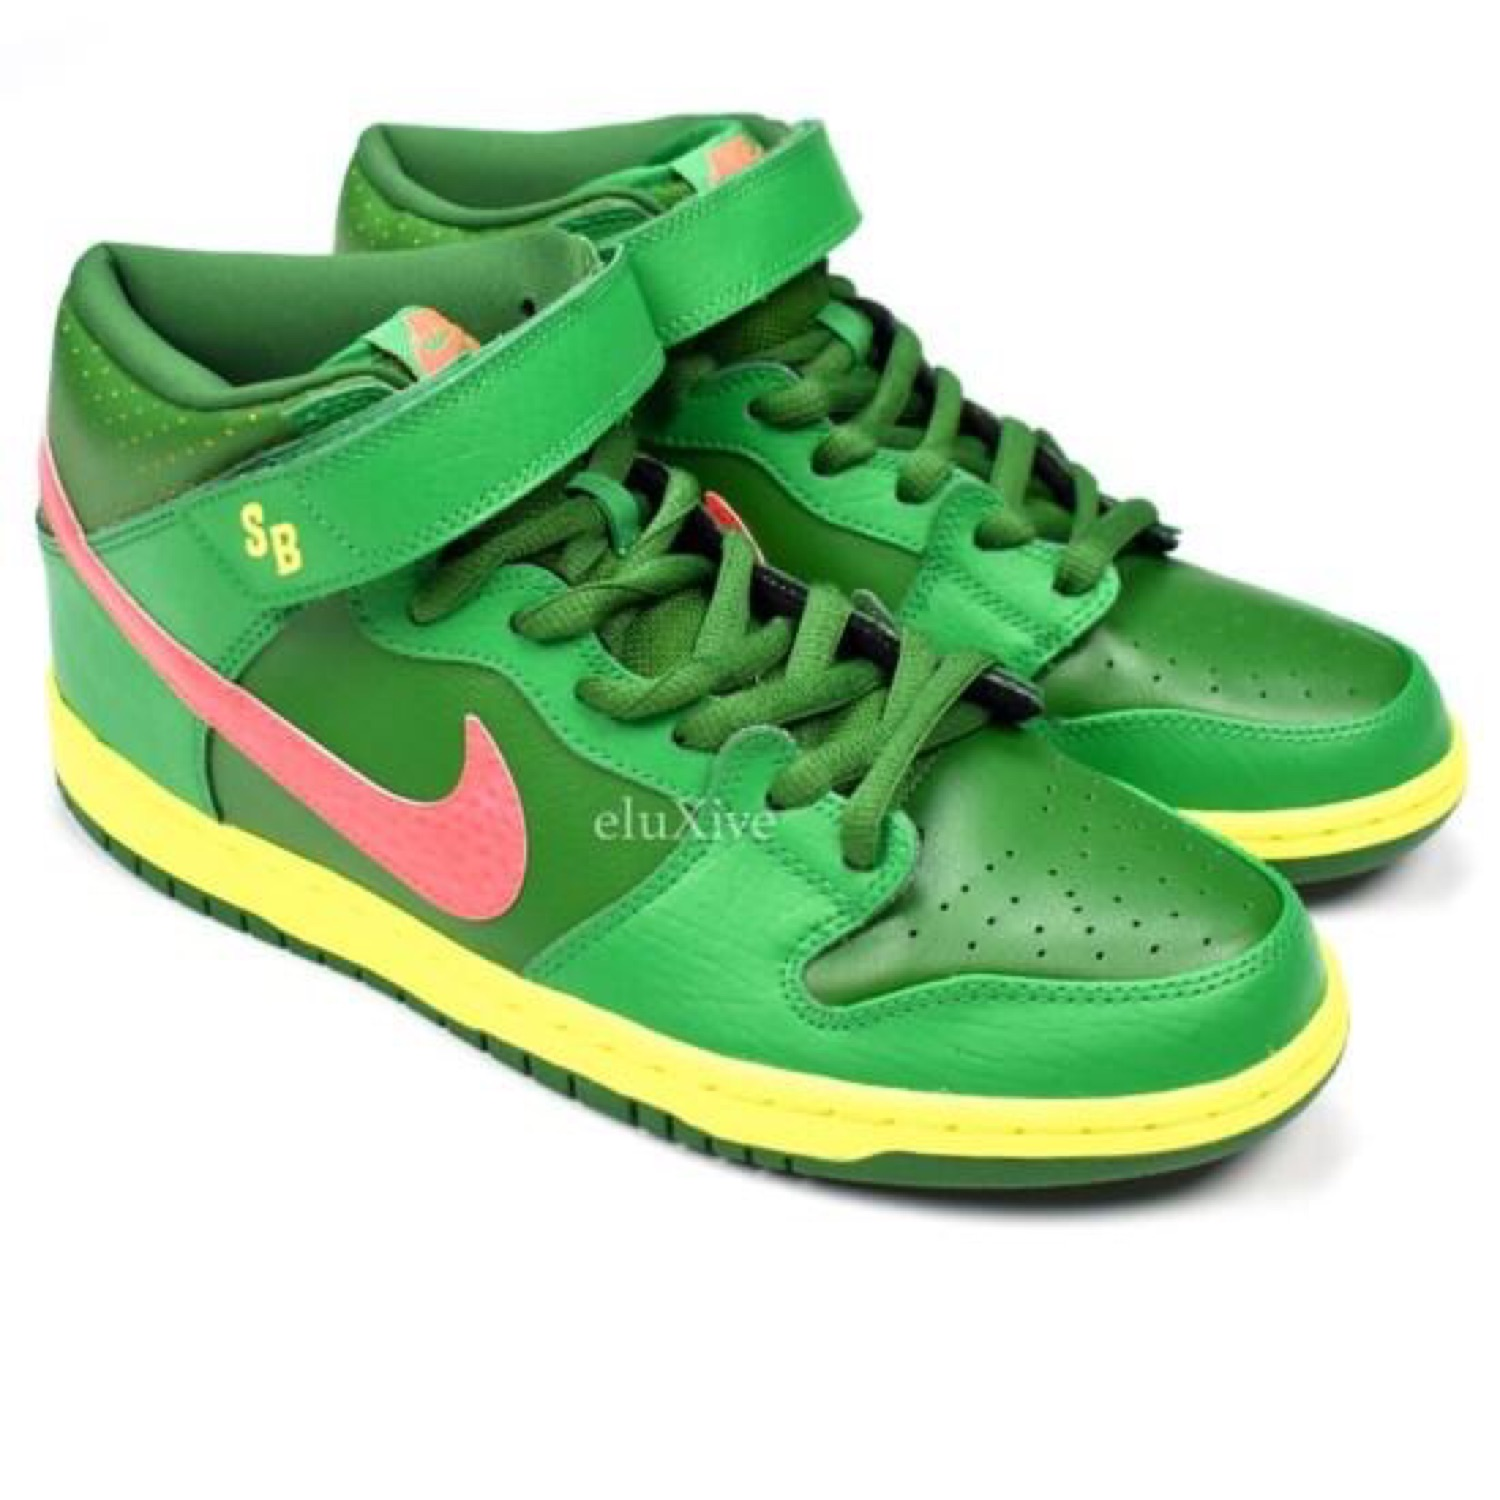 lowest price 3c584 3dae5 Nike Dunk Mid Pro Sb 'Watermelon' Ds